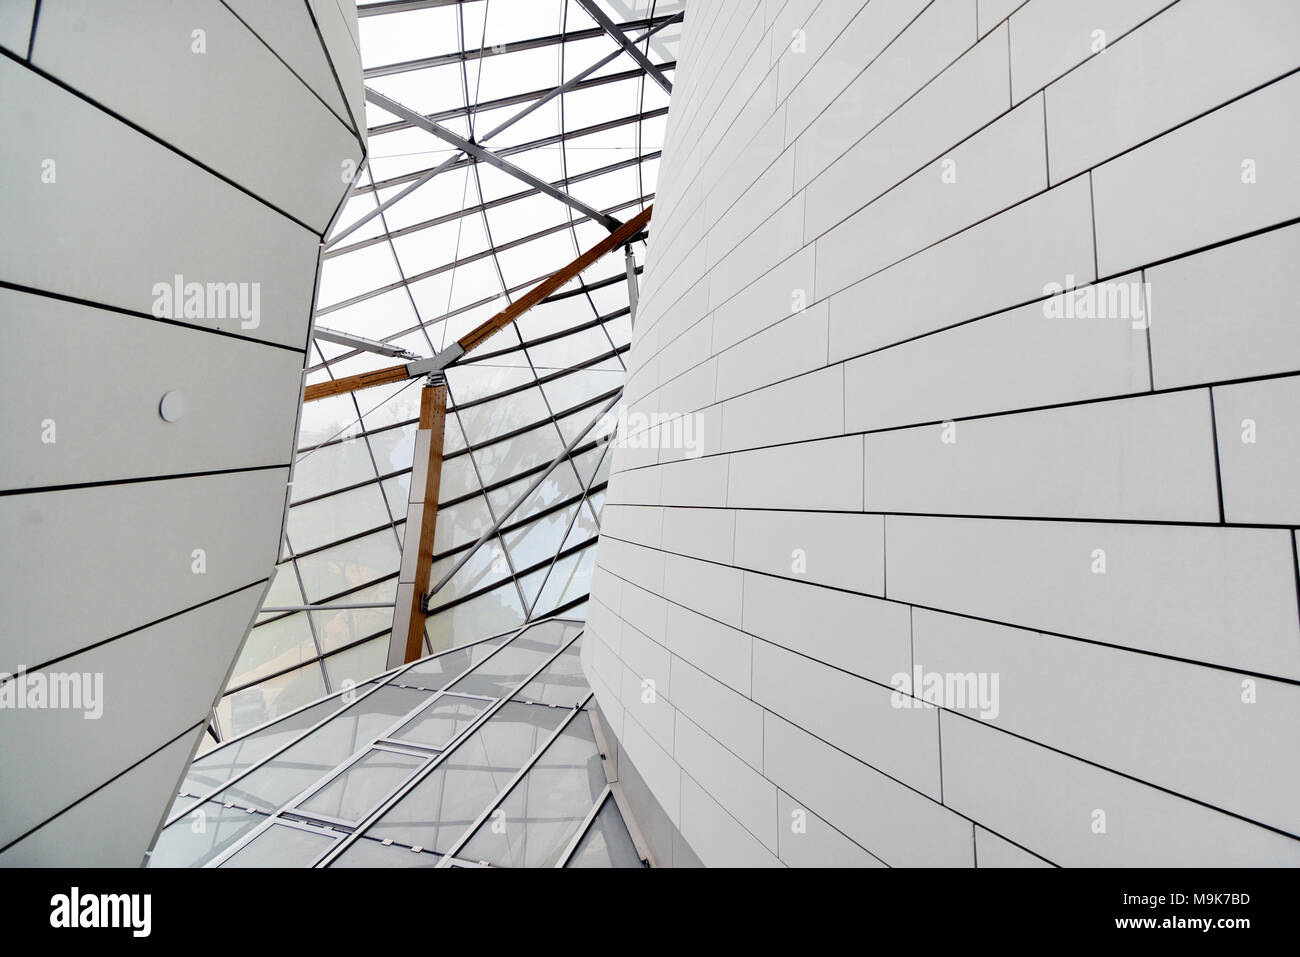 Wall Detail & Glass Roof of the Louis Vuitton Foundation Art Museum & Cultural Centre (2006-14) designed by Frank Gehry, Paris, France - Stock Image